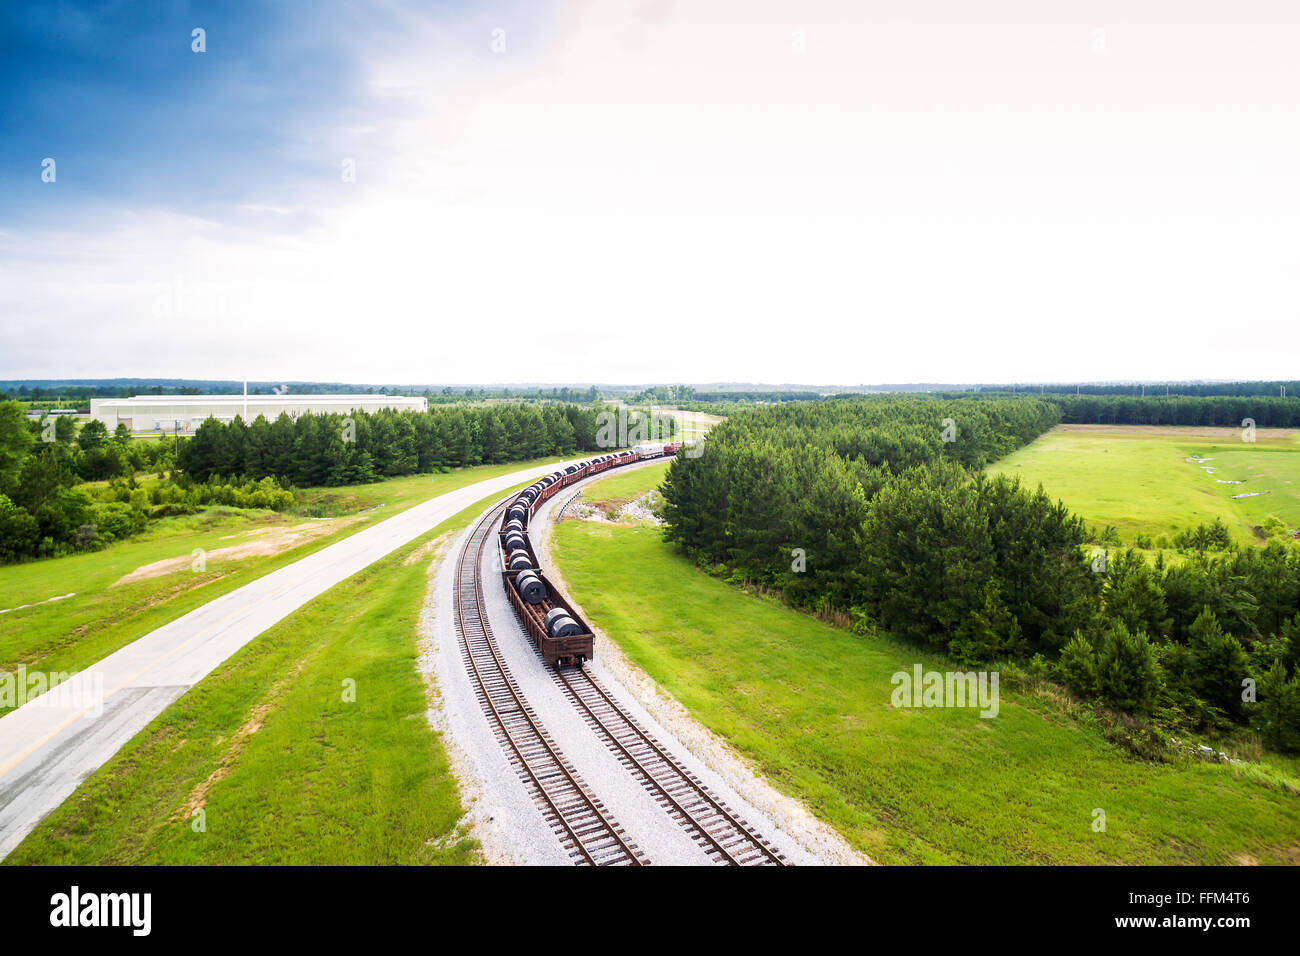 Aerial - steel coils in rail cars on train tracks in Alabama - Stock Image